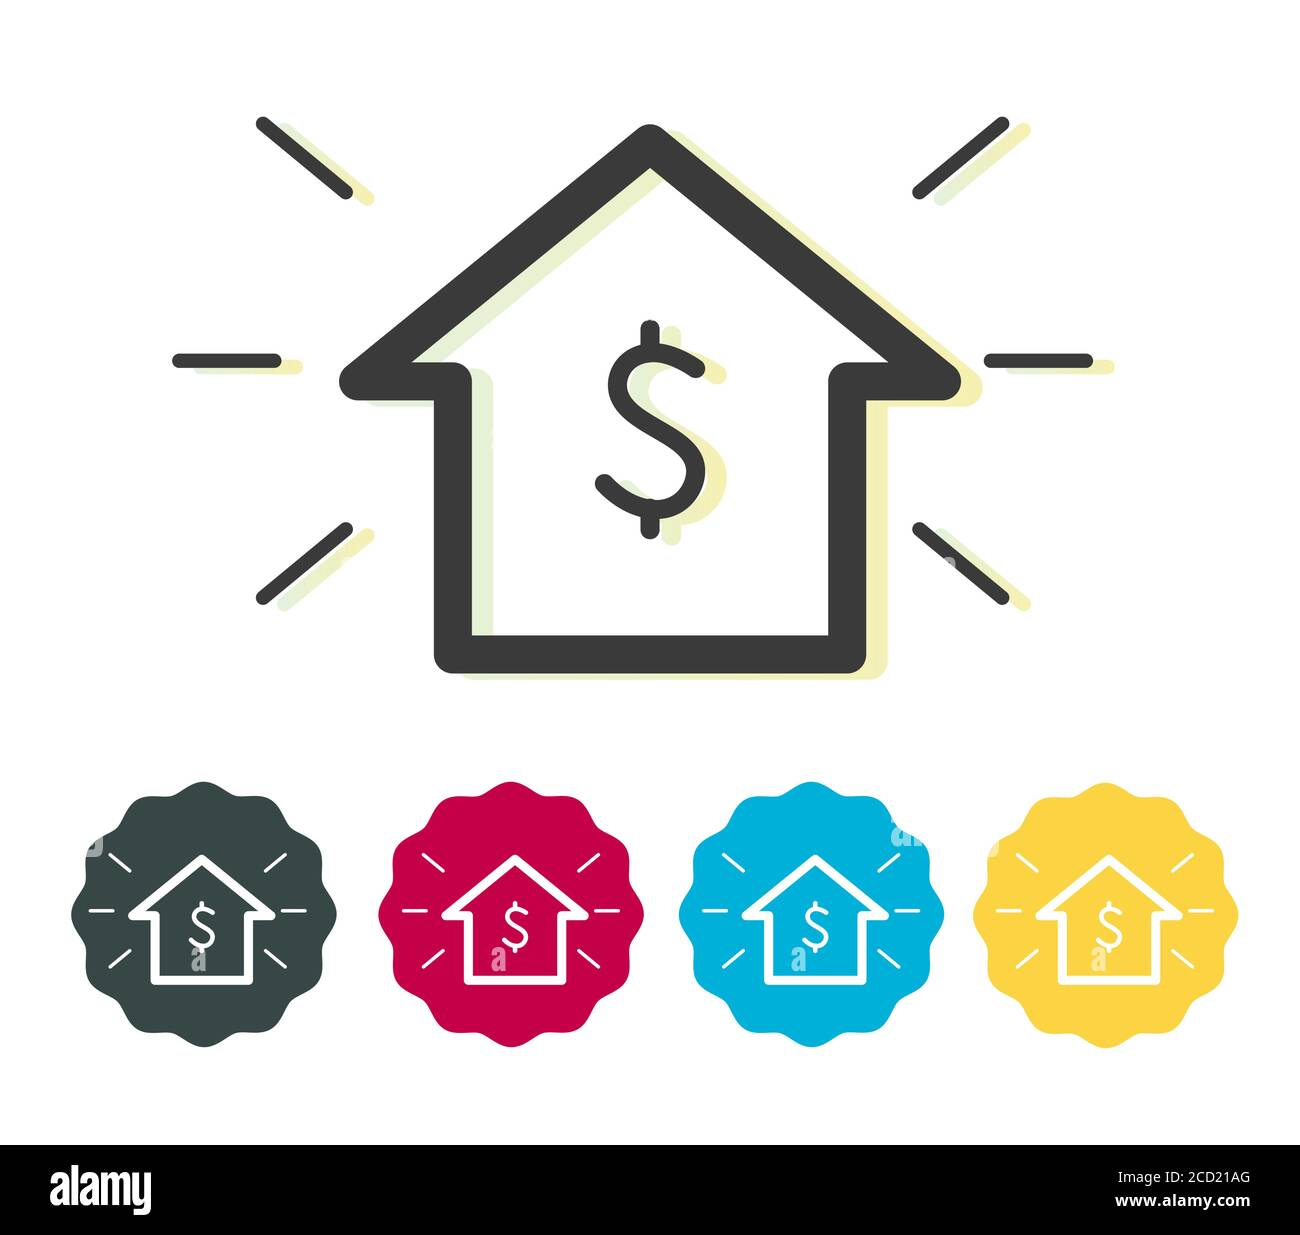 house with dollar sign cost advantage icon as eps 10 file stock vector image art alamy https www alamy com house with dollar sign cost advantage icon as eps 10 file image369453240 html